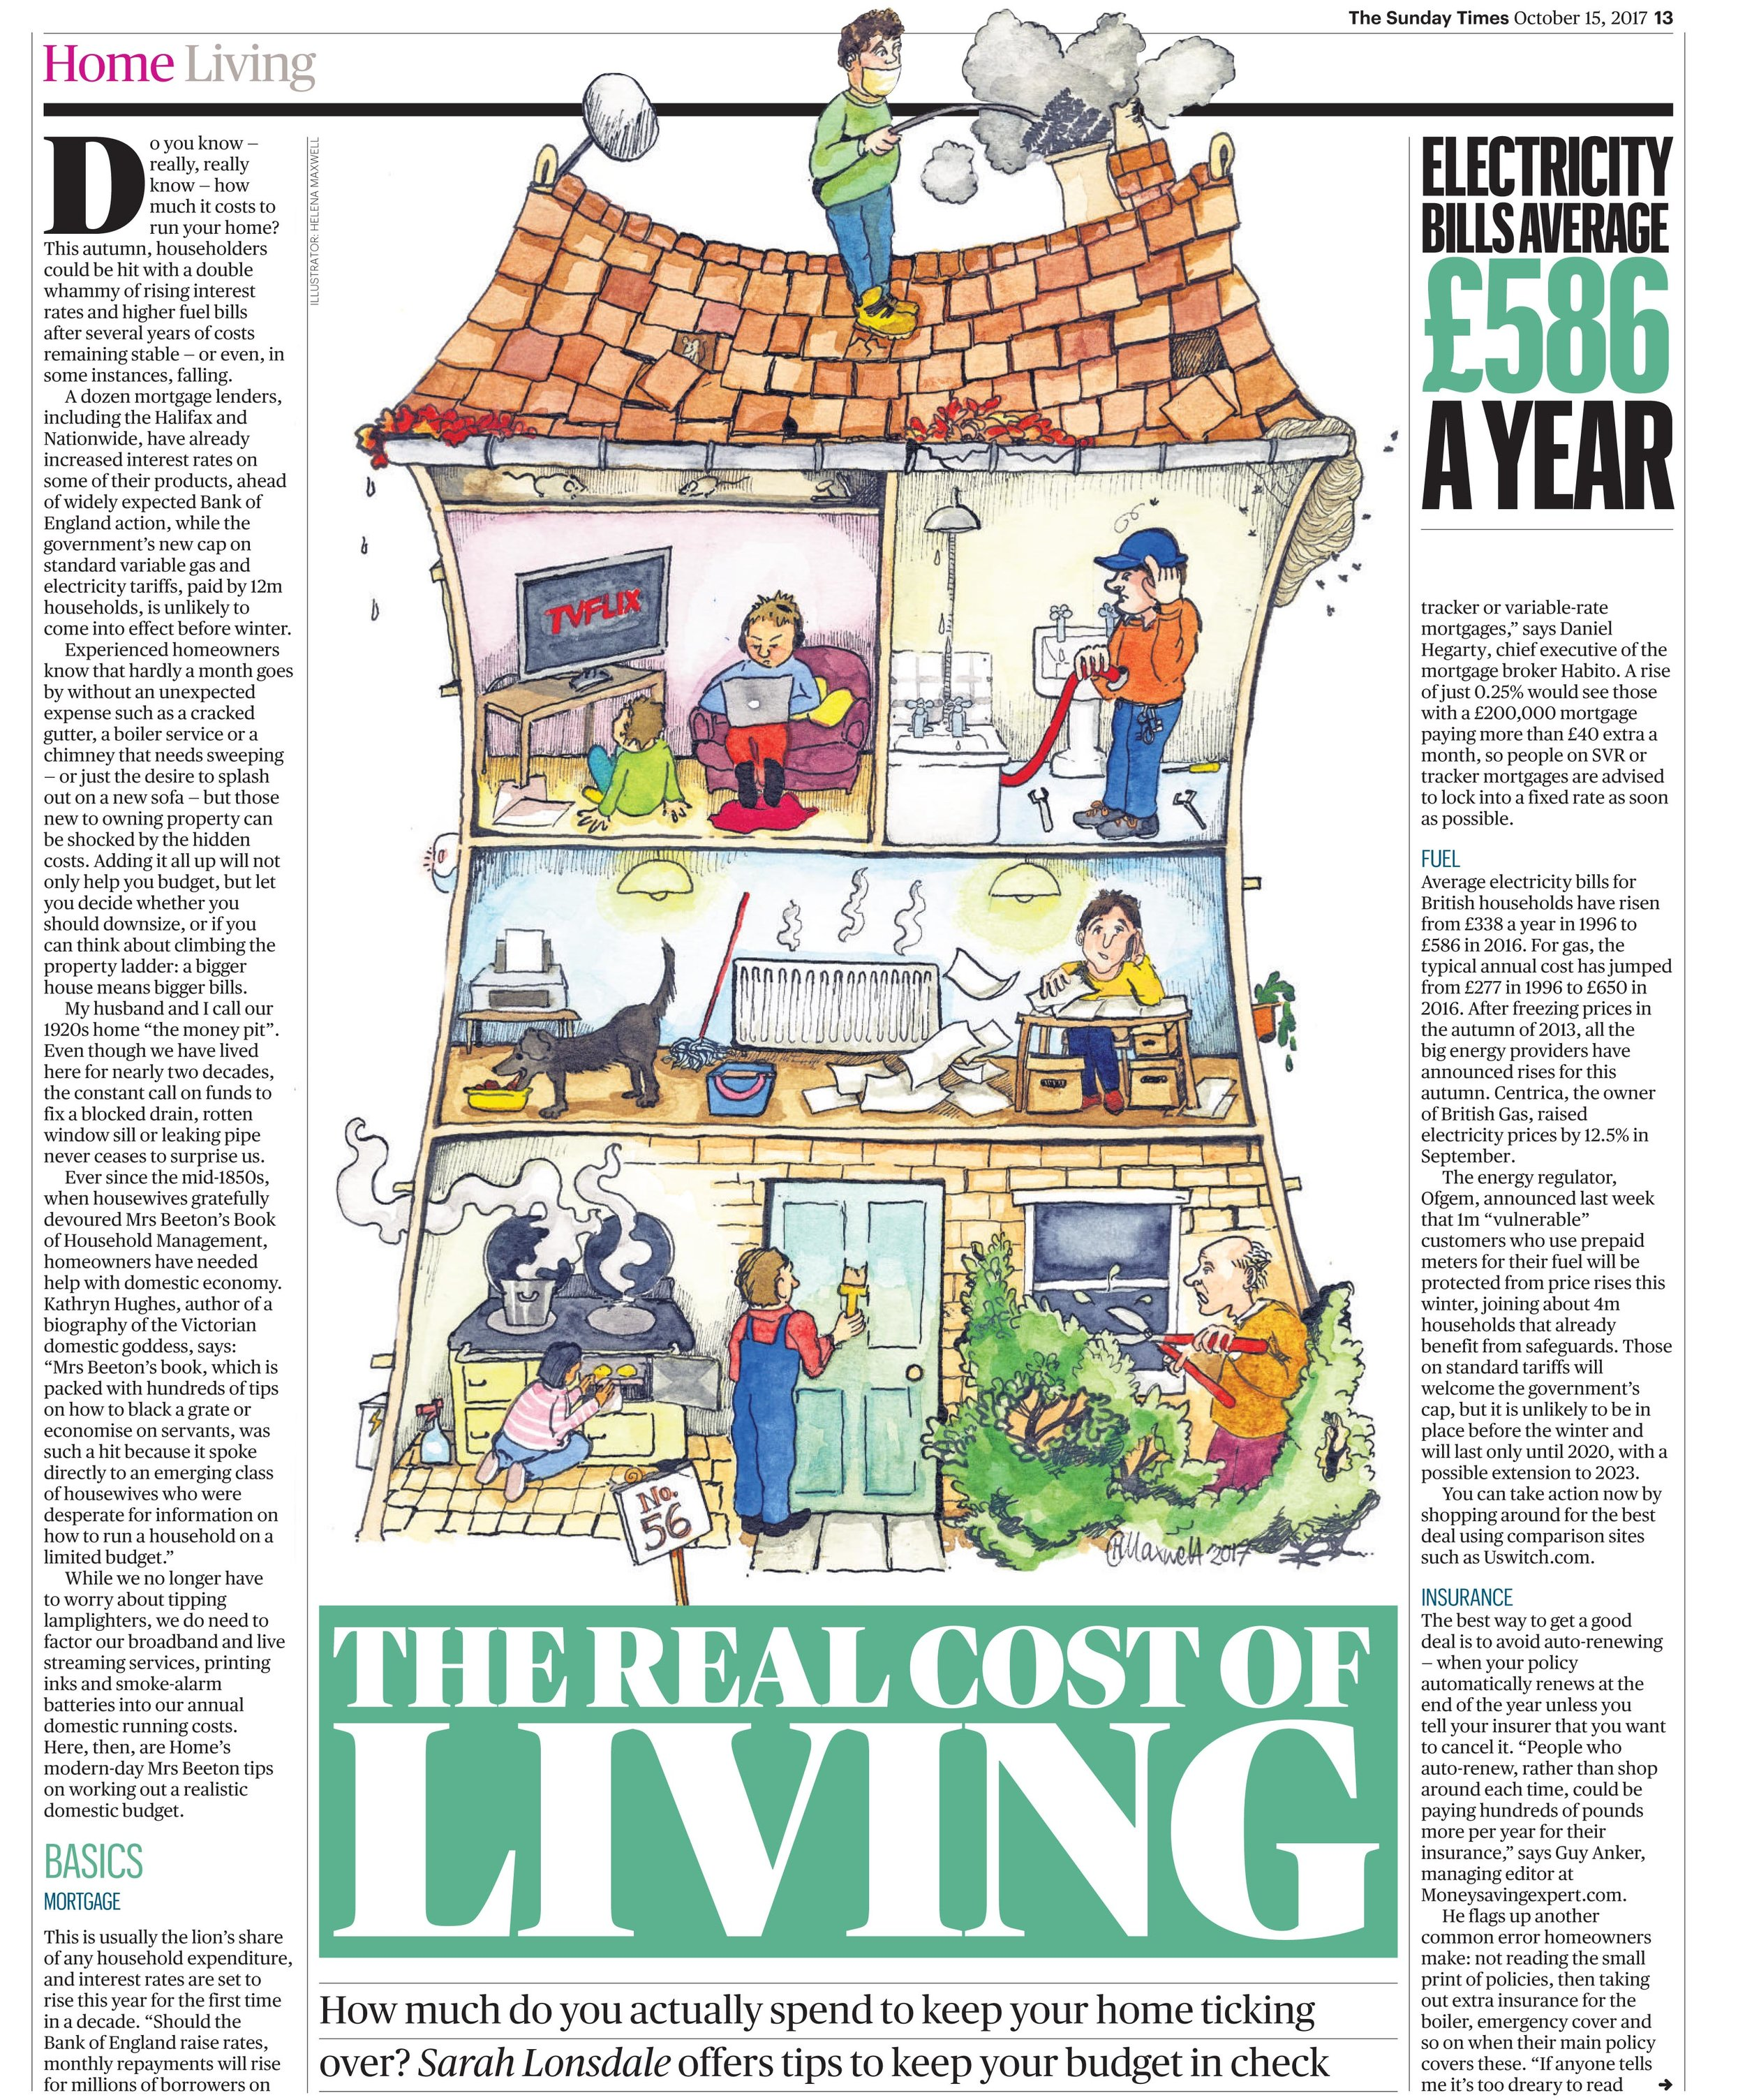 The Real Cost of Living Sunday Times Home, October 2017